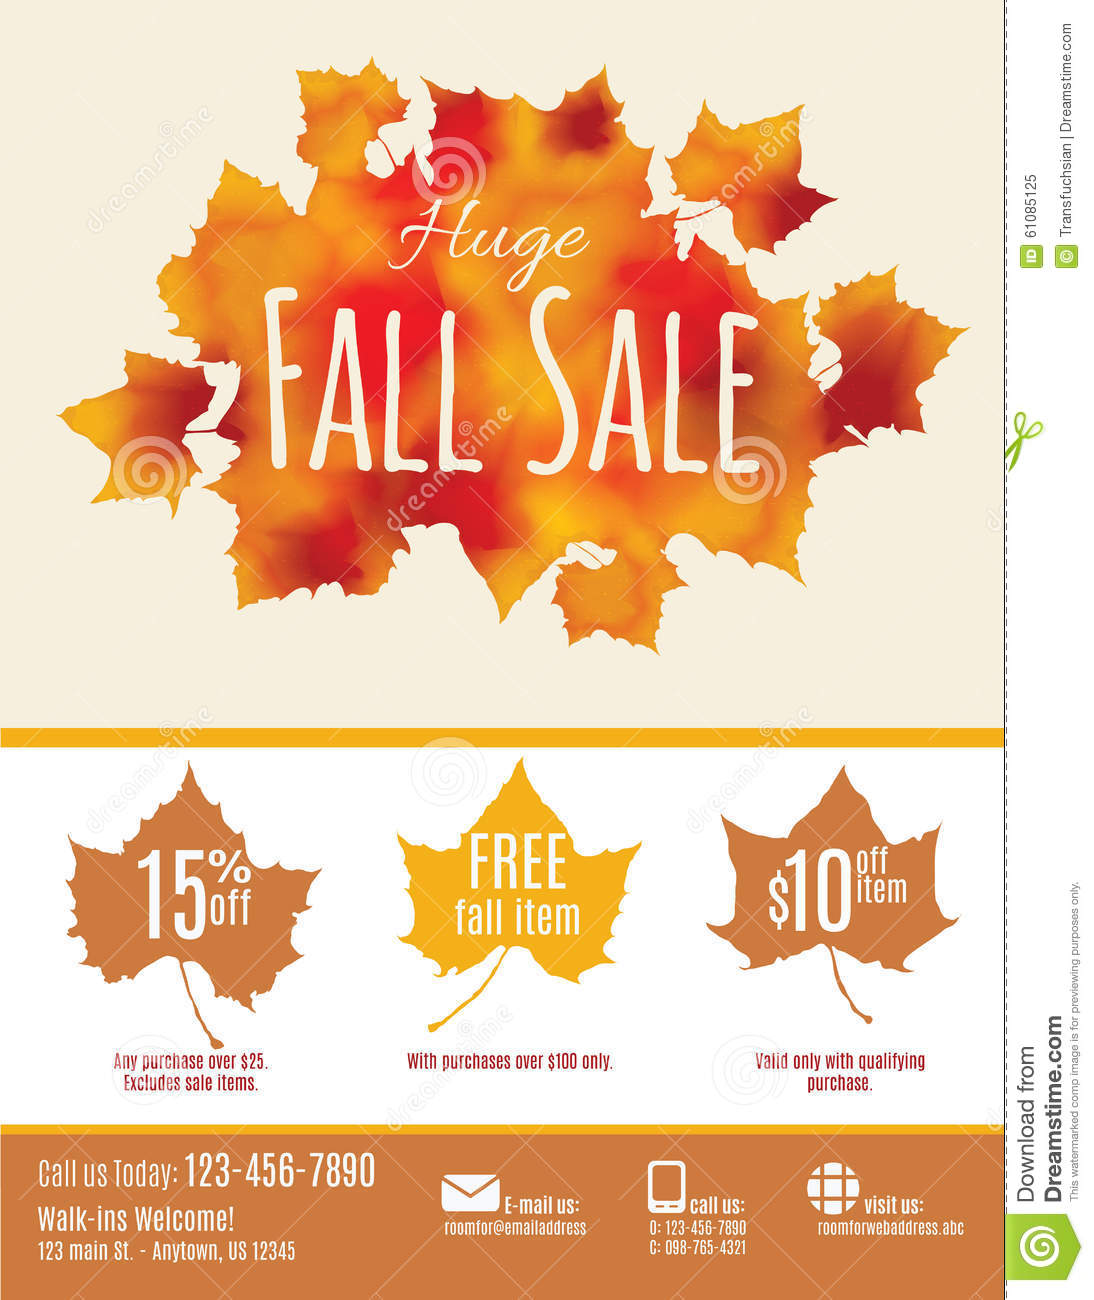 Fall Sale Flyer Template Stock Vector - Image: 61085125